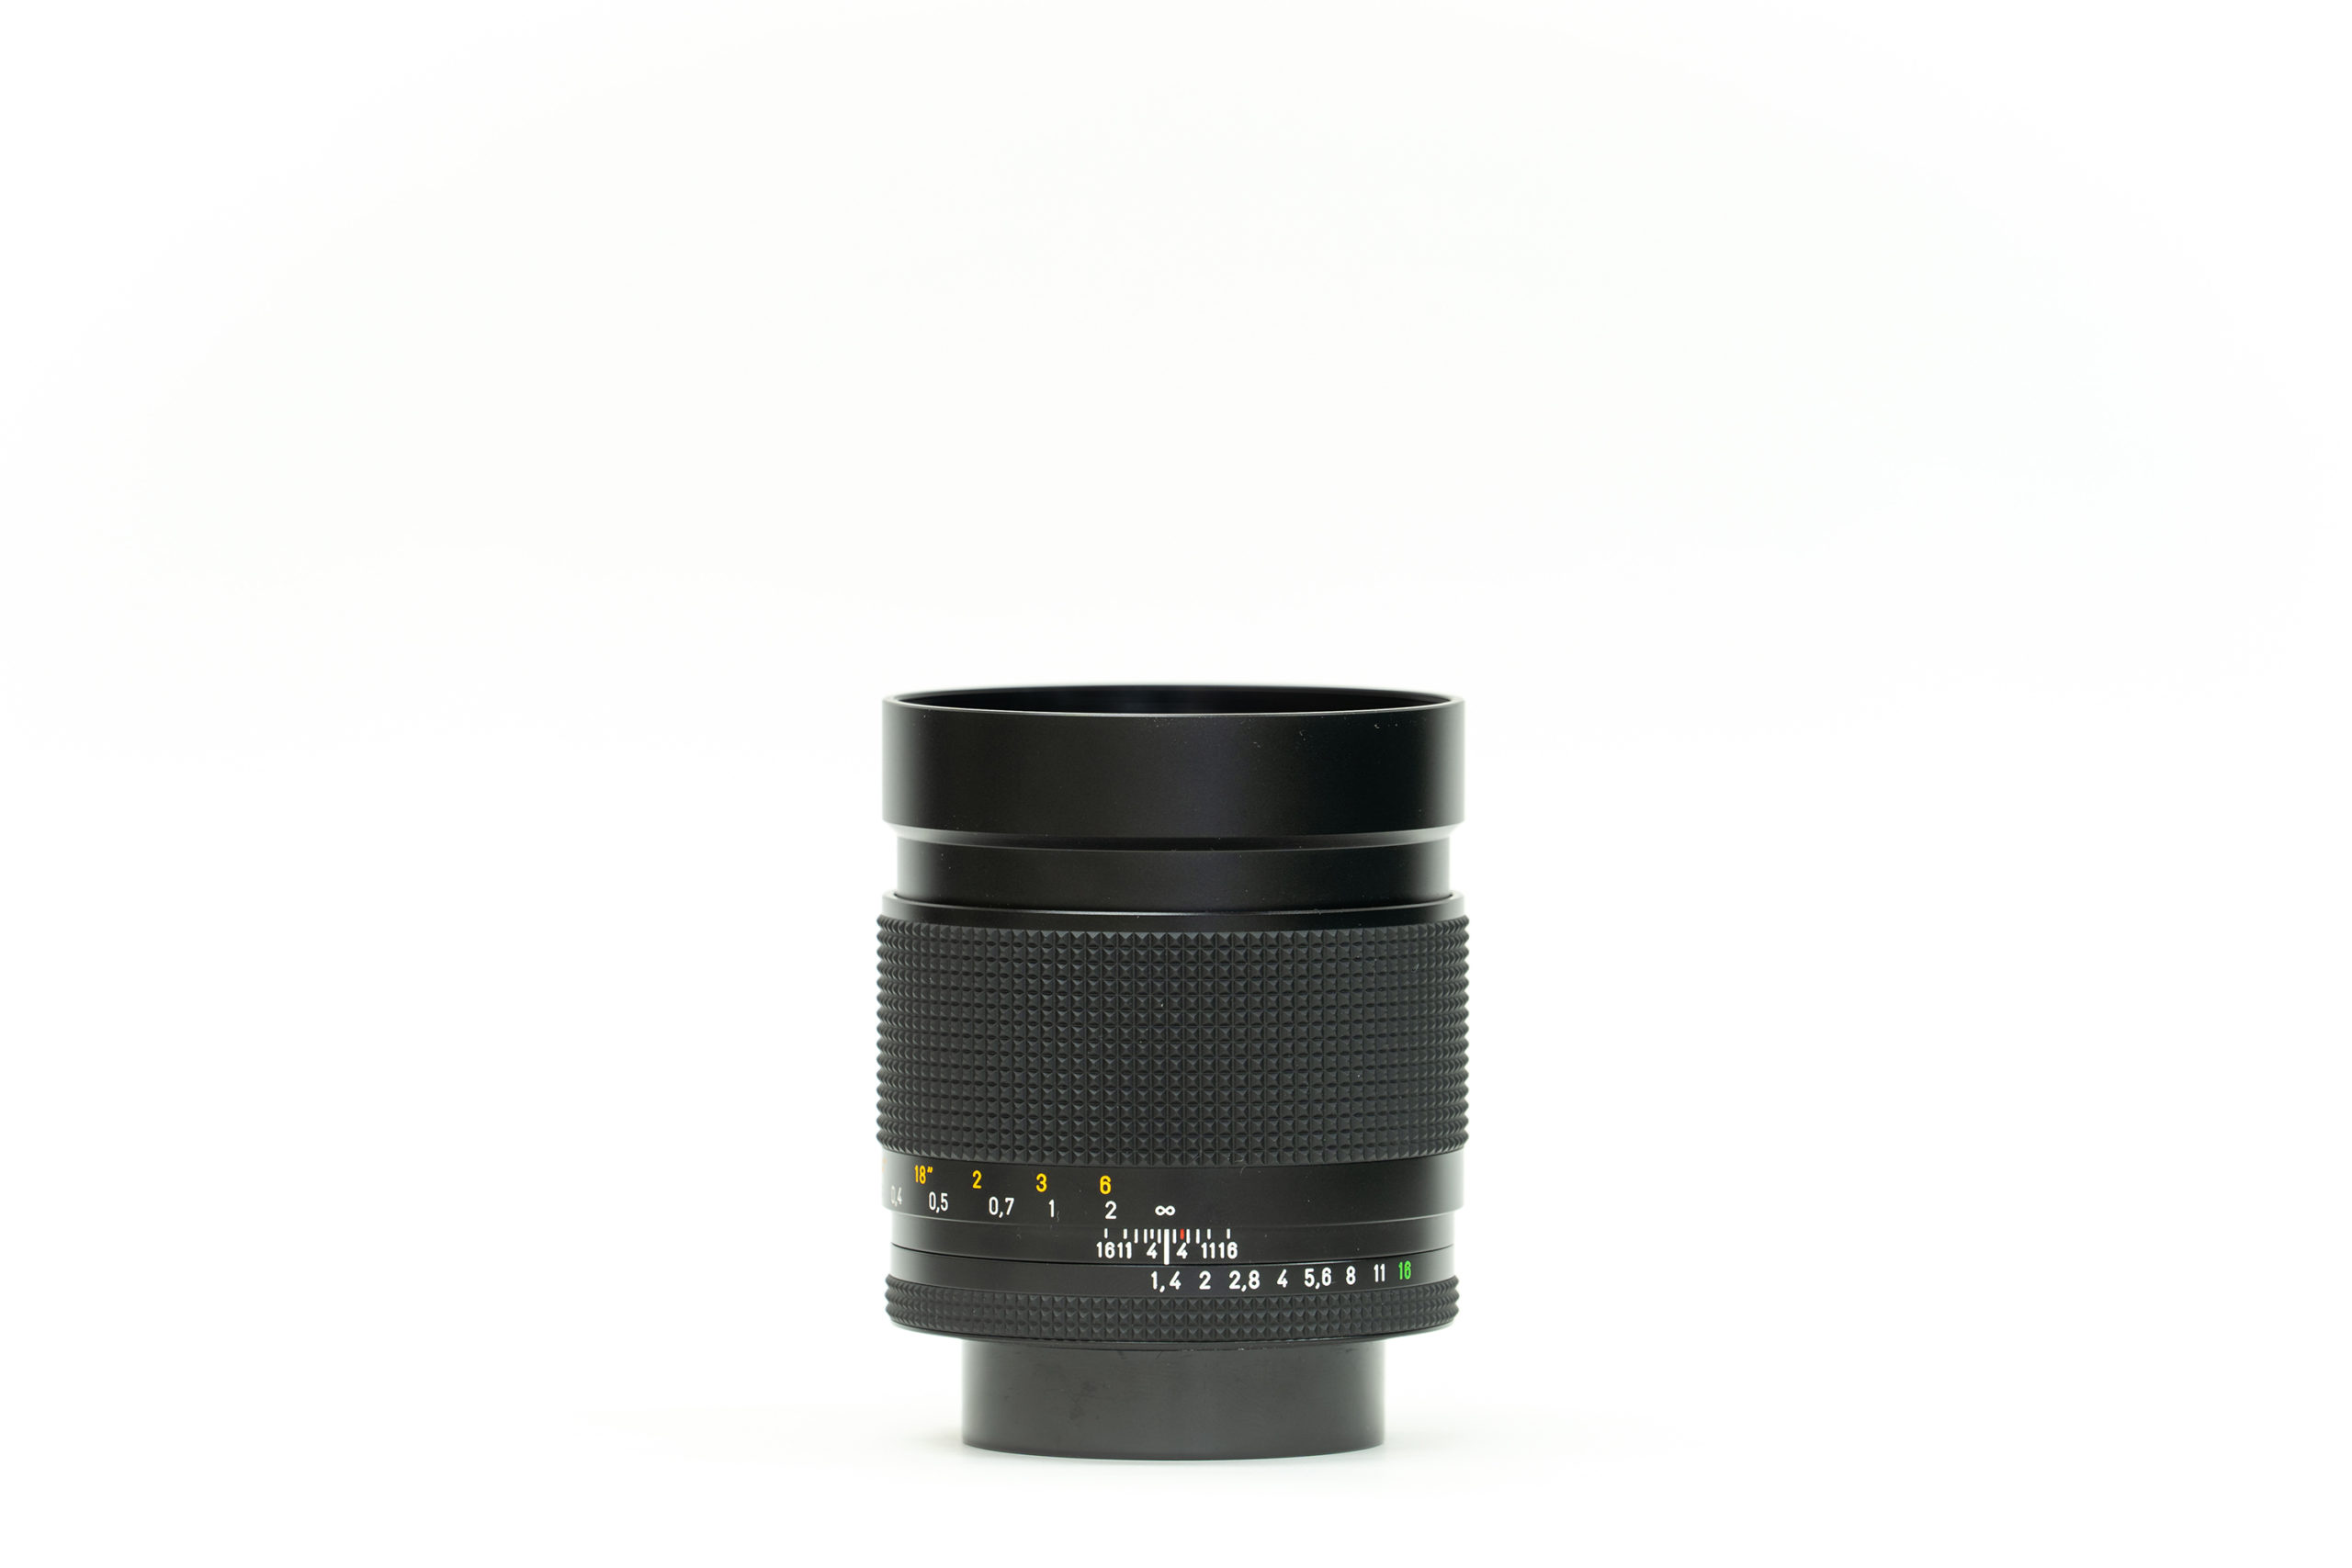 Carl Zeiss Distagon 1.4/35 MMJ